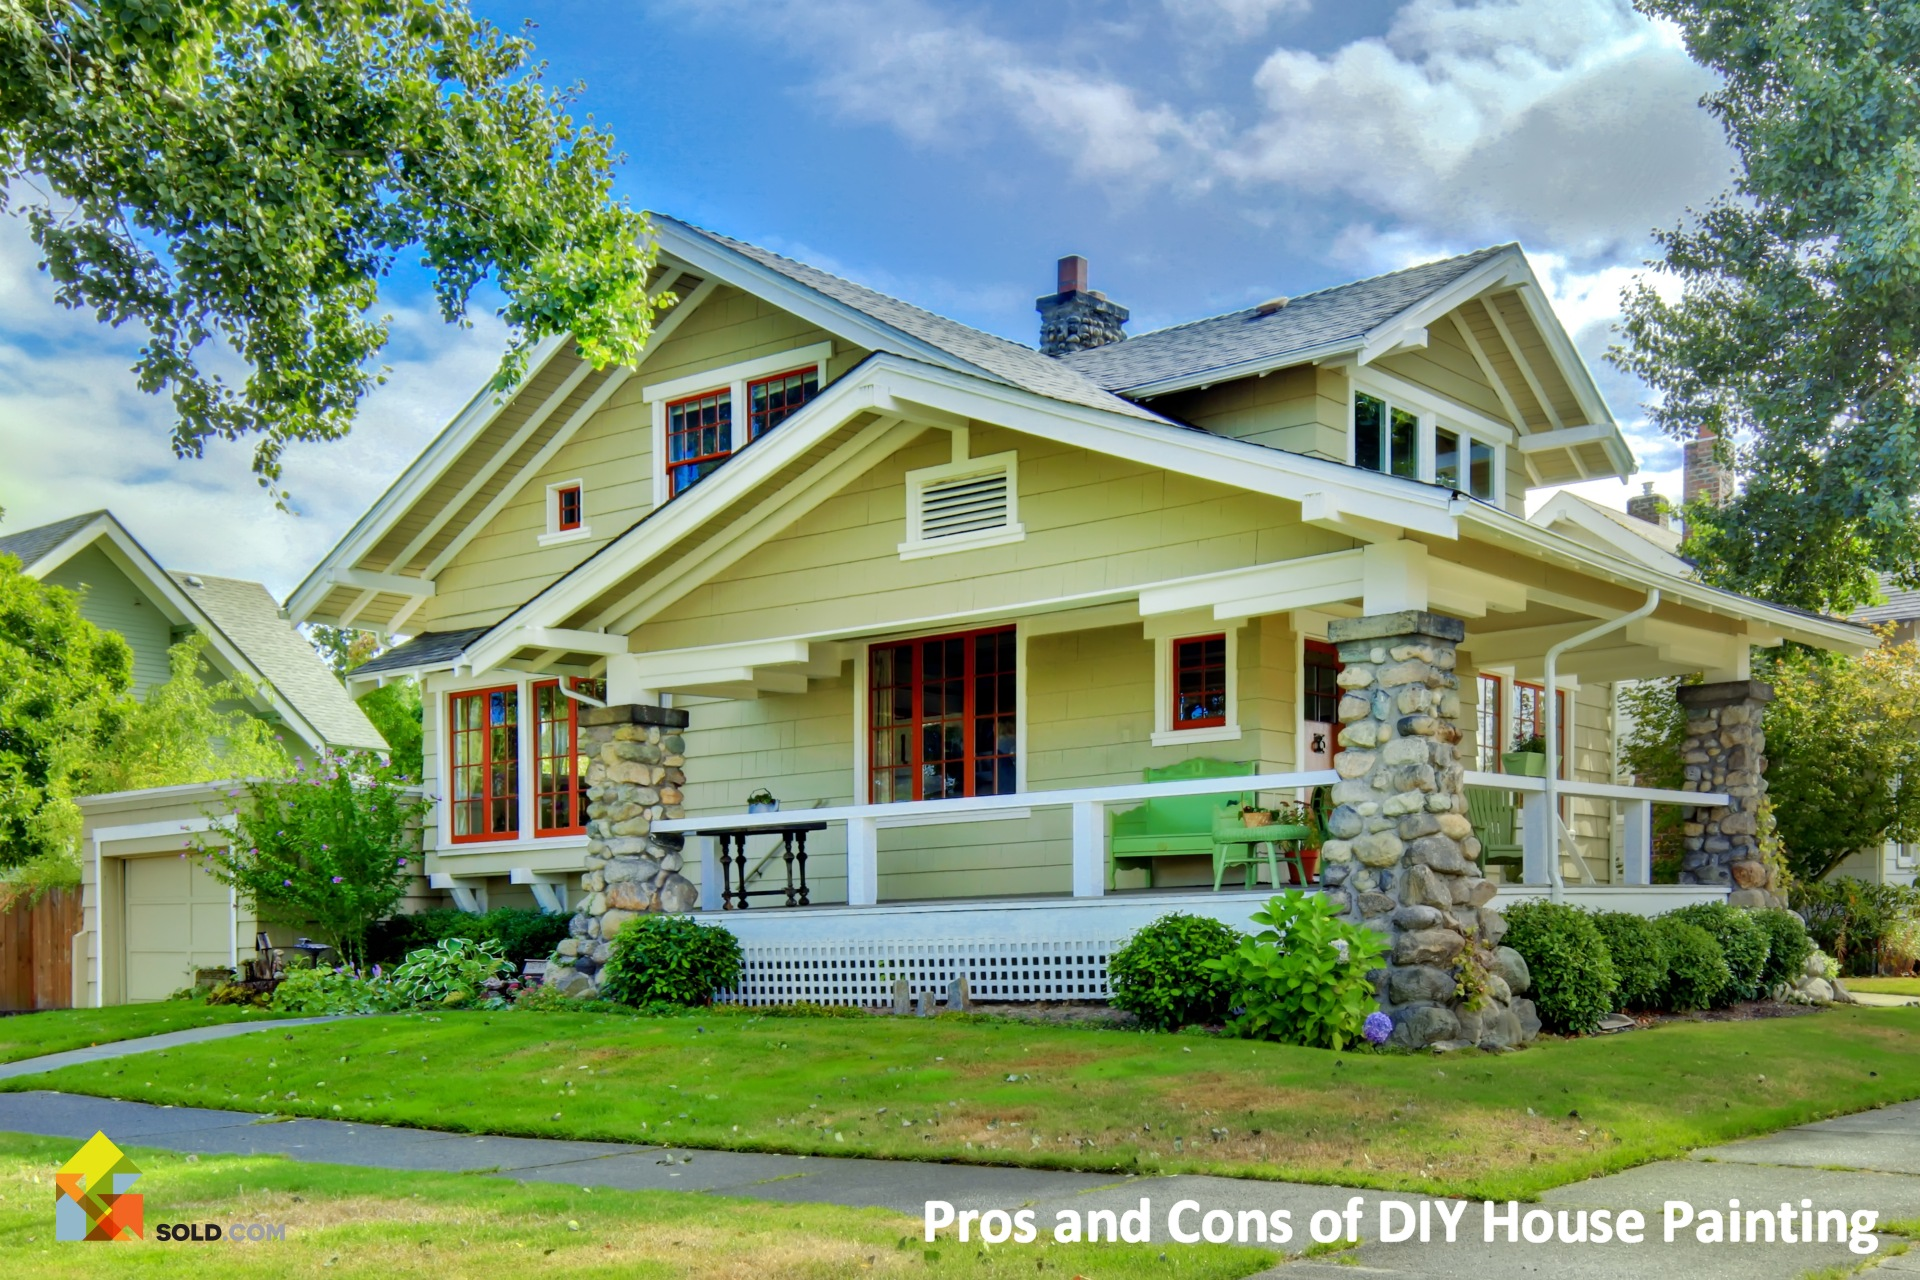 Pros and Cons of DIY House Painting